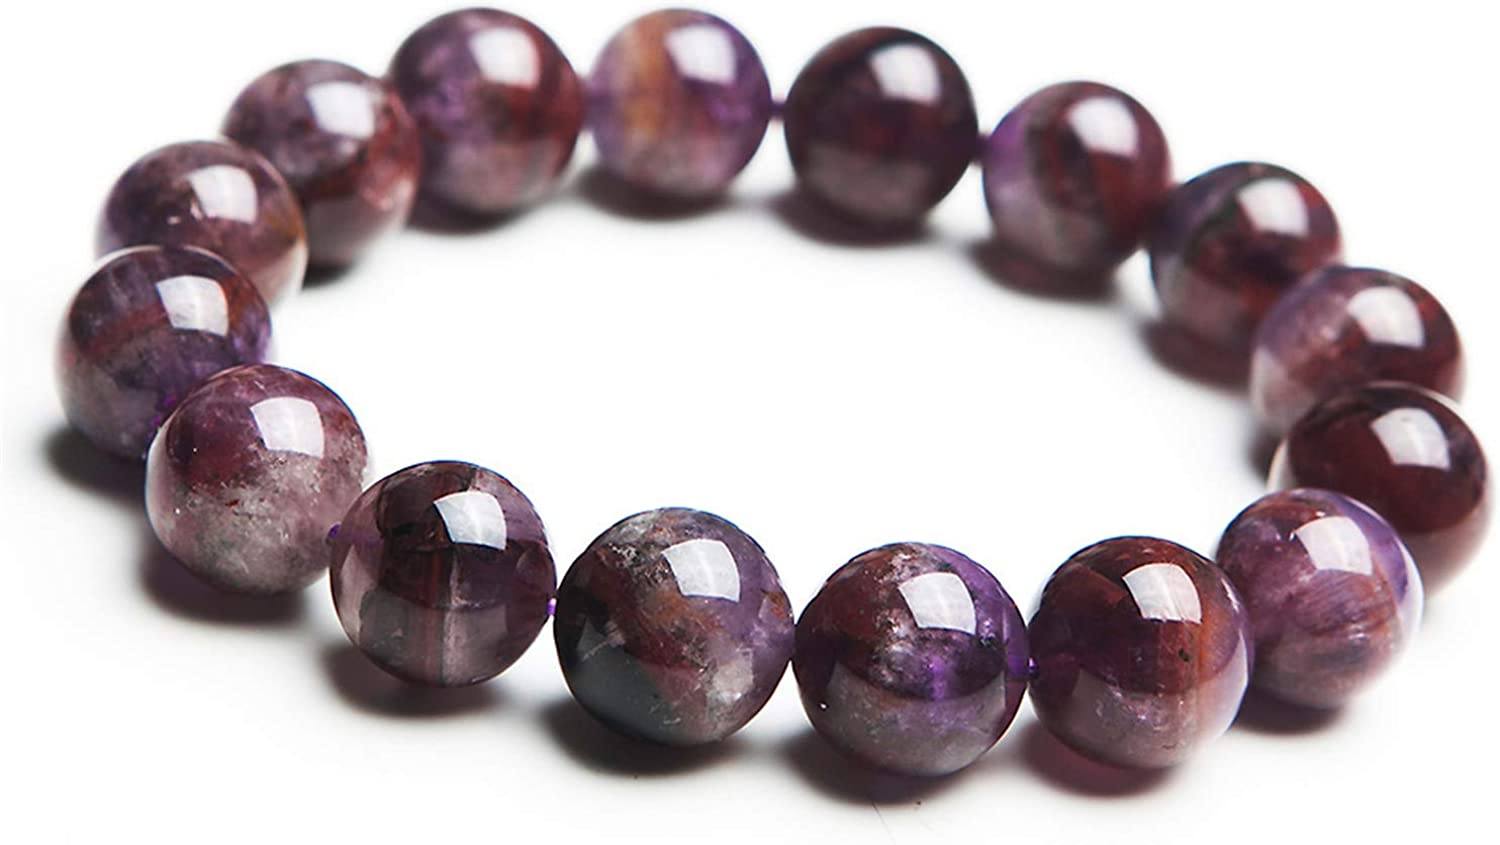 Super sale Muko Gemstone Natural Auralite 23 Clear New product!! Crystal Wome Beads Round